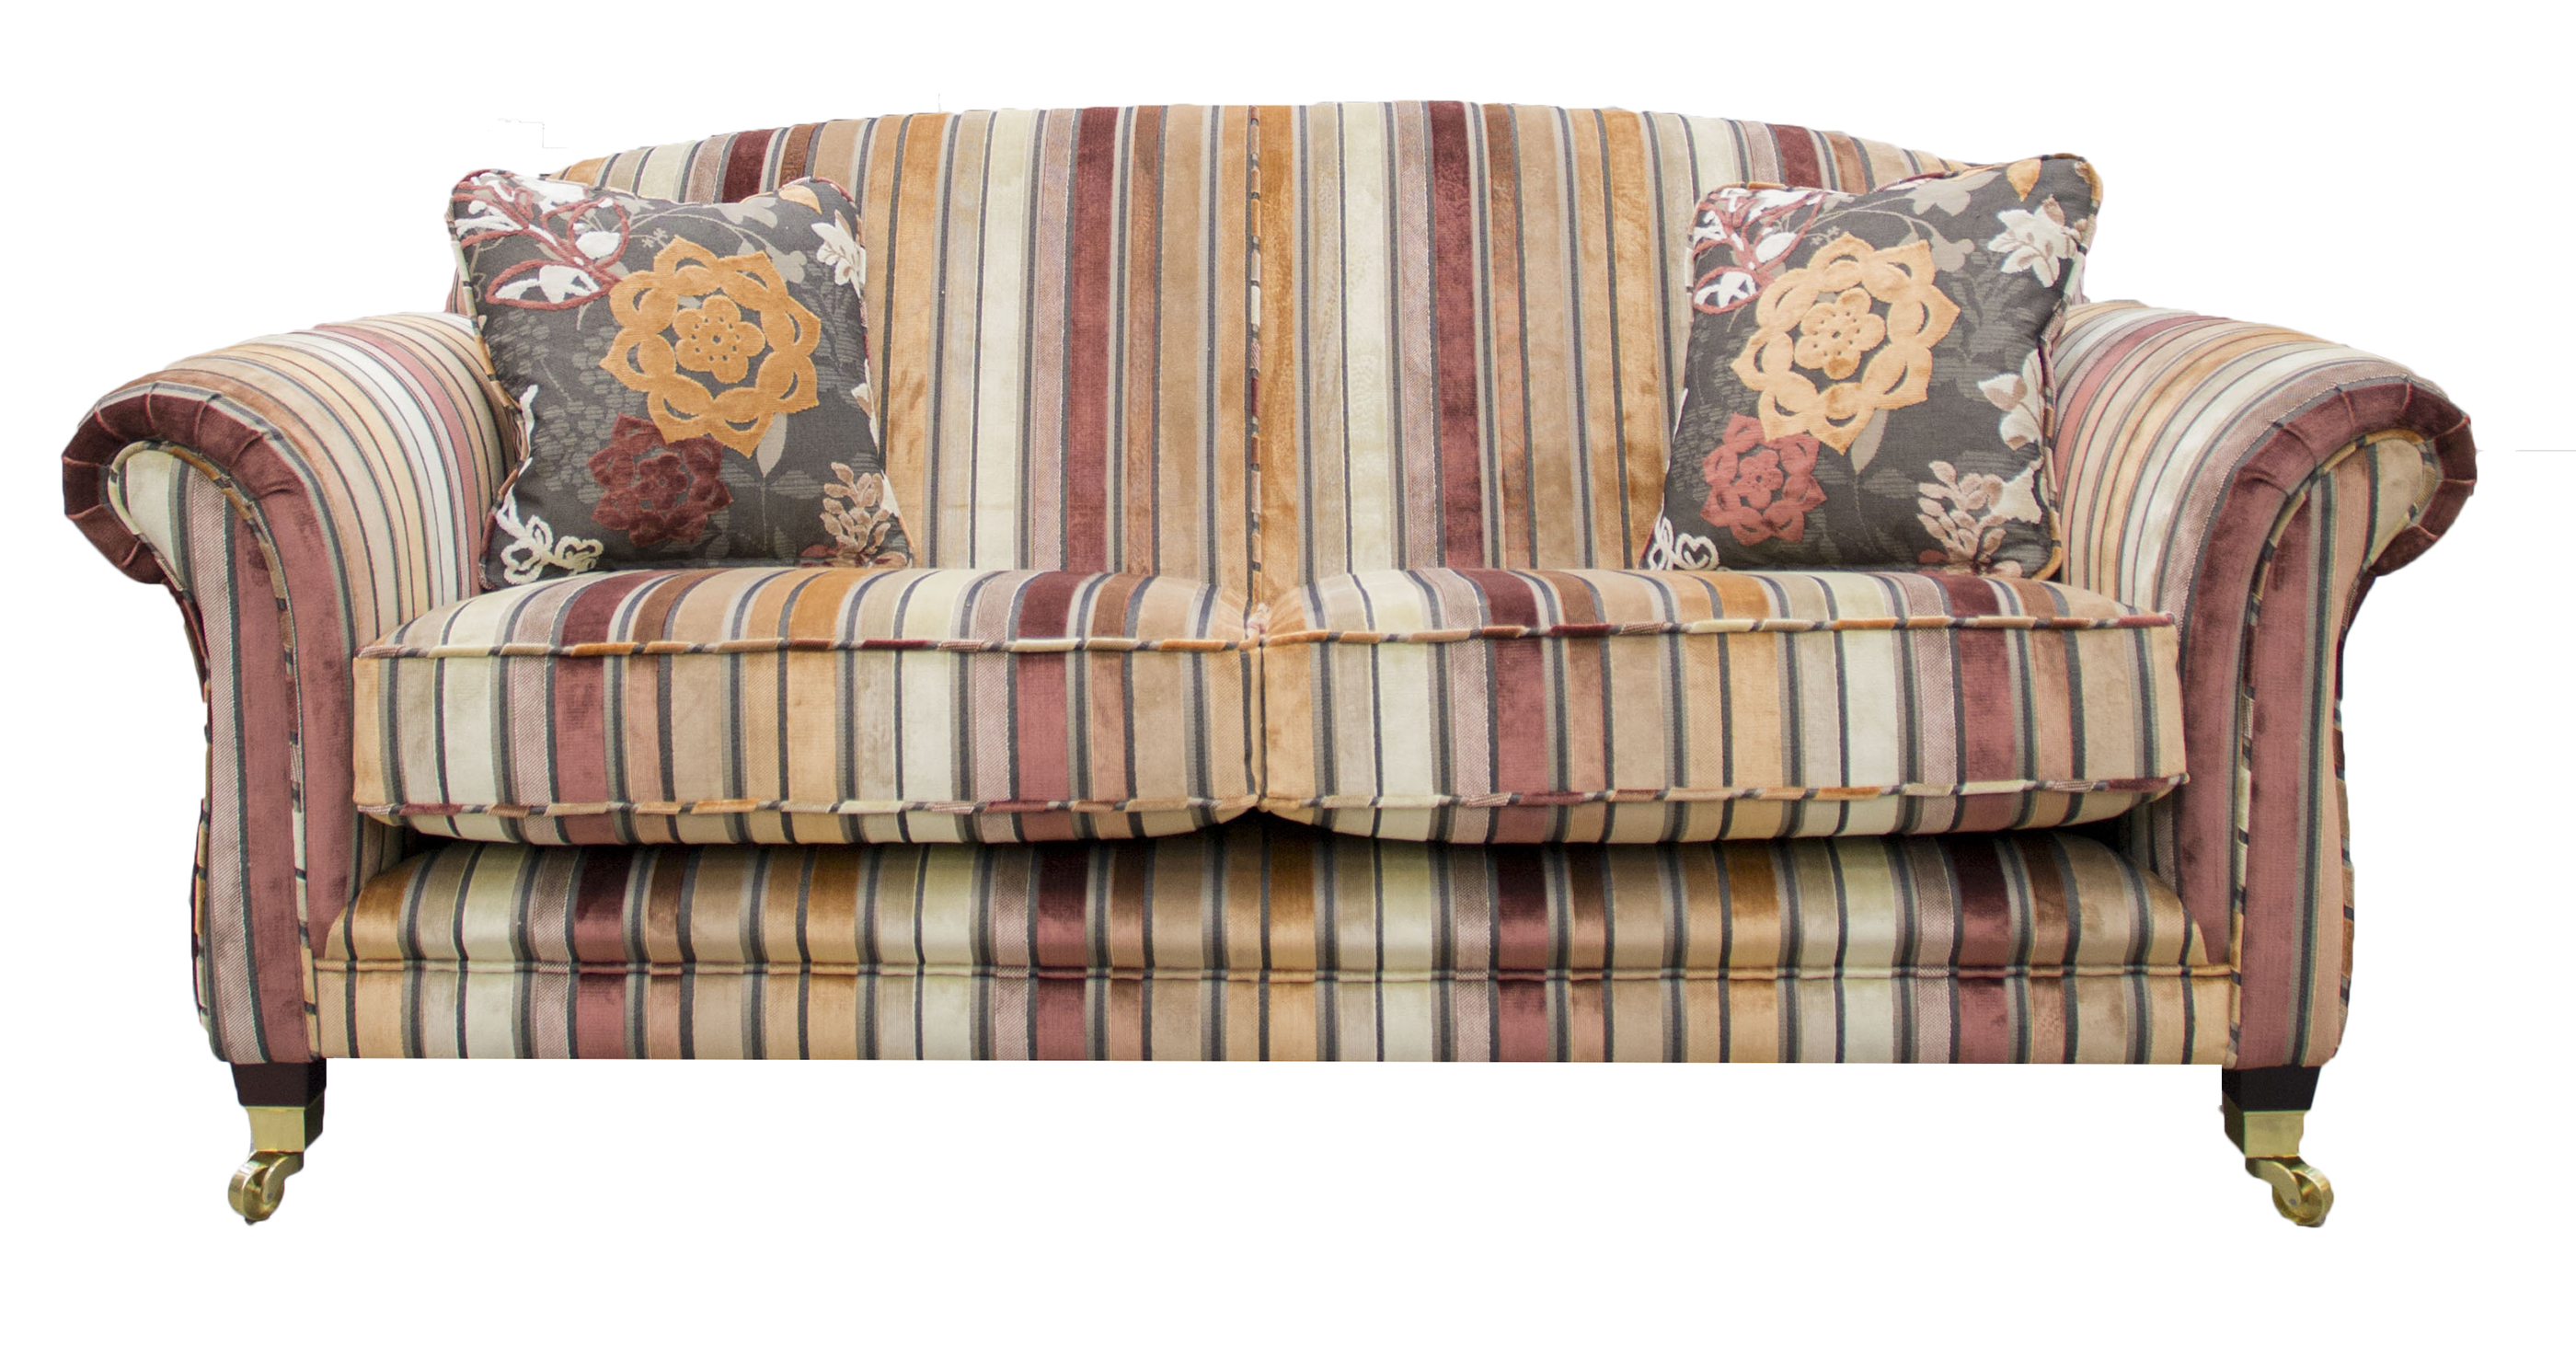 Elton-Fixed-Back-Sofa-–-Alton-–-Texas-Stripe-Coffee-Cream-–-Platinum-Collection